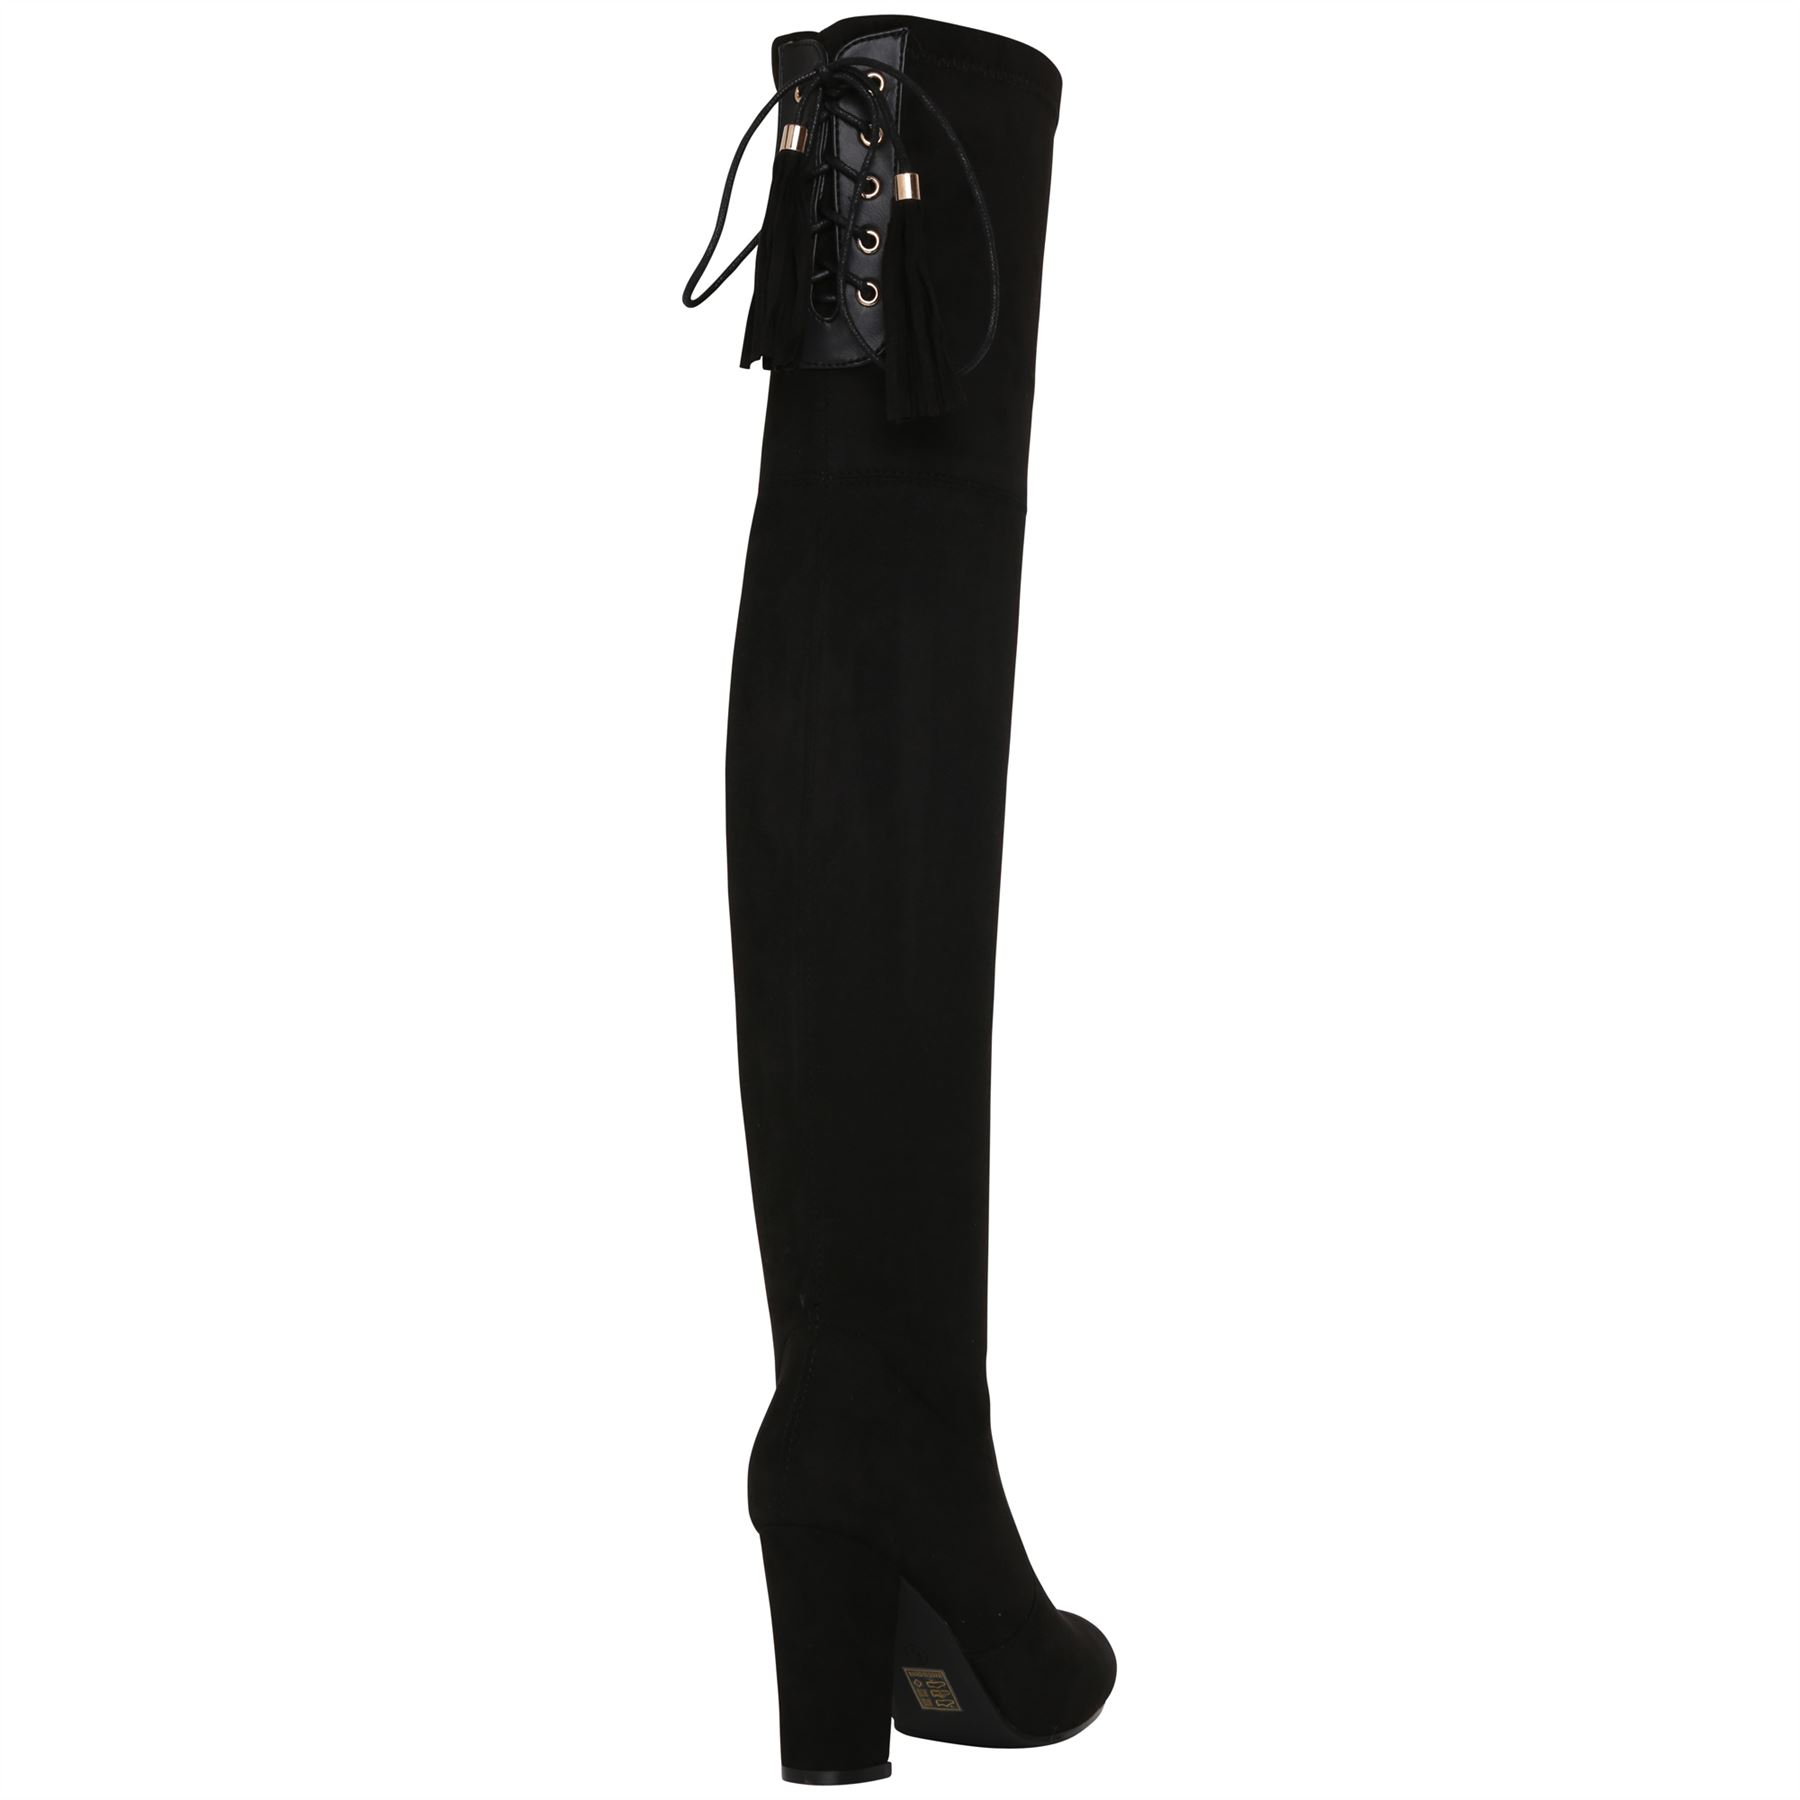 Womens-Over-Knee-High-Boots-Ladies-Low-Block-Heel-Riding-Stretch-Winter-Shoes miniatura 3